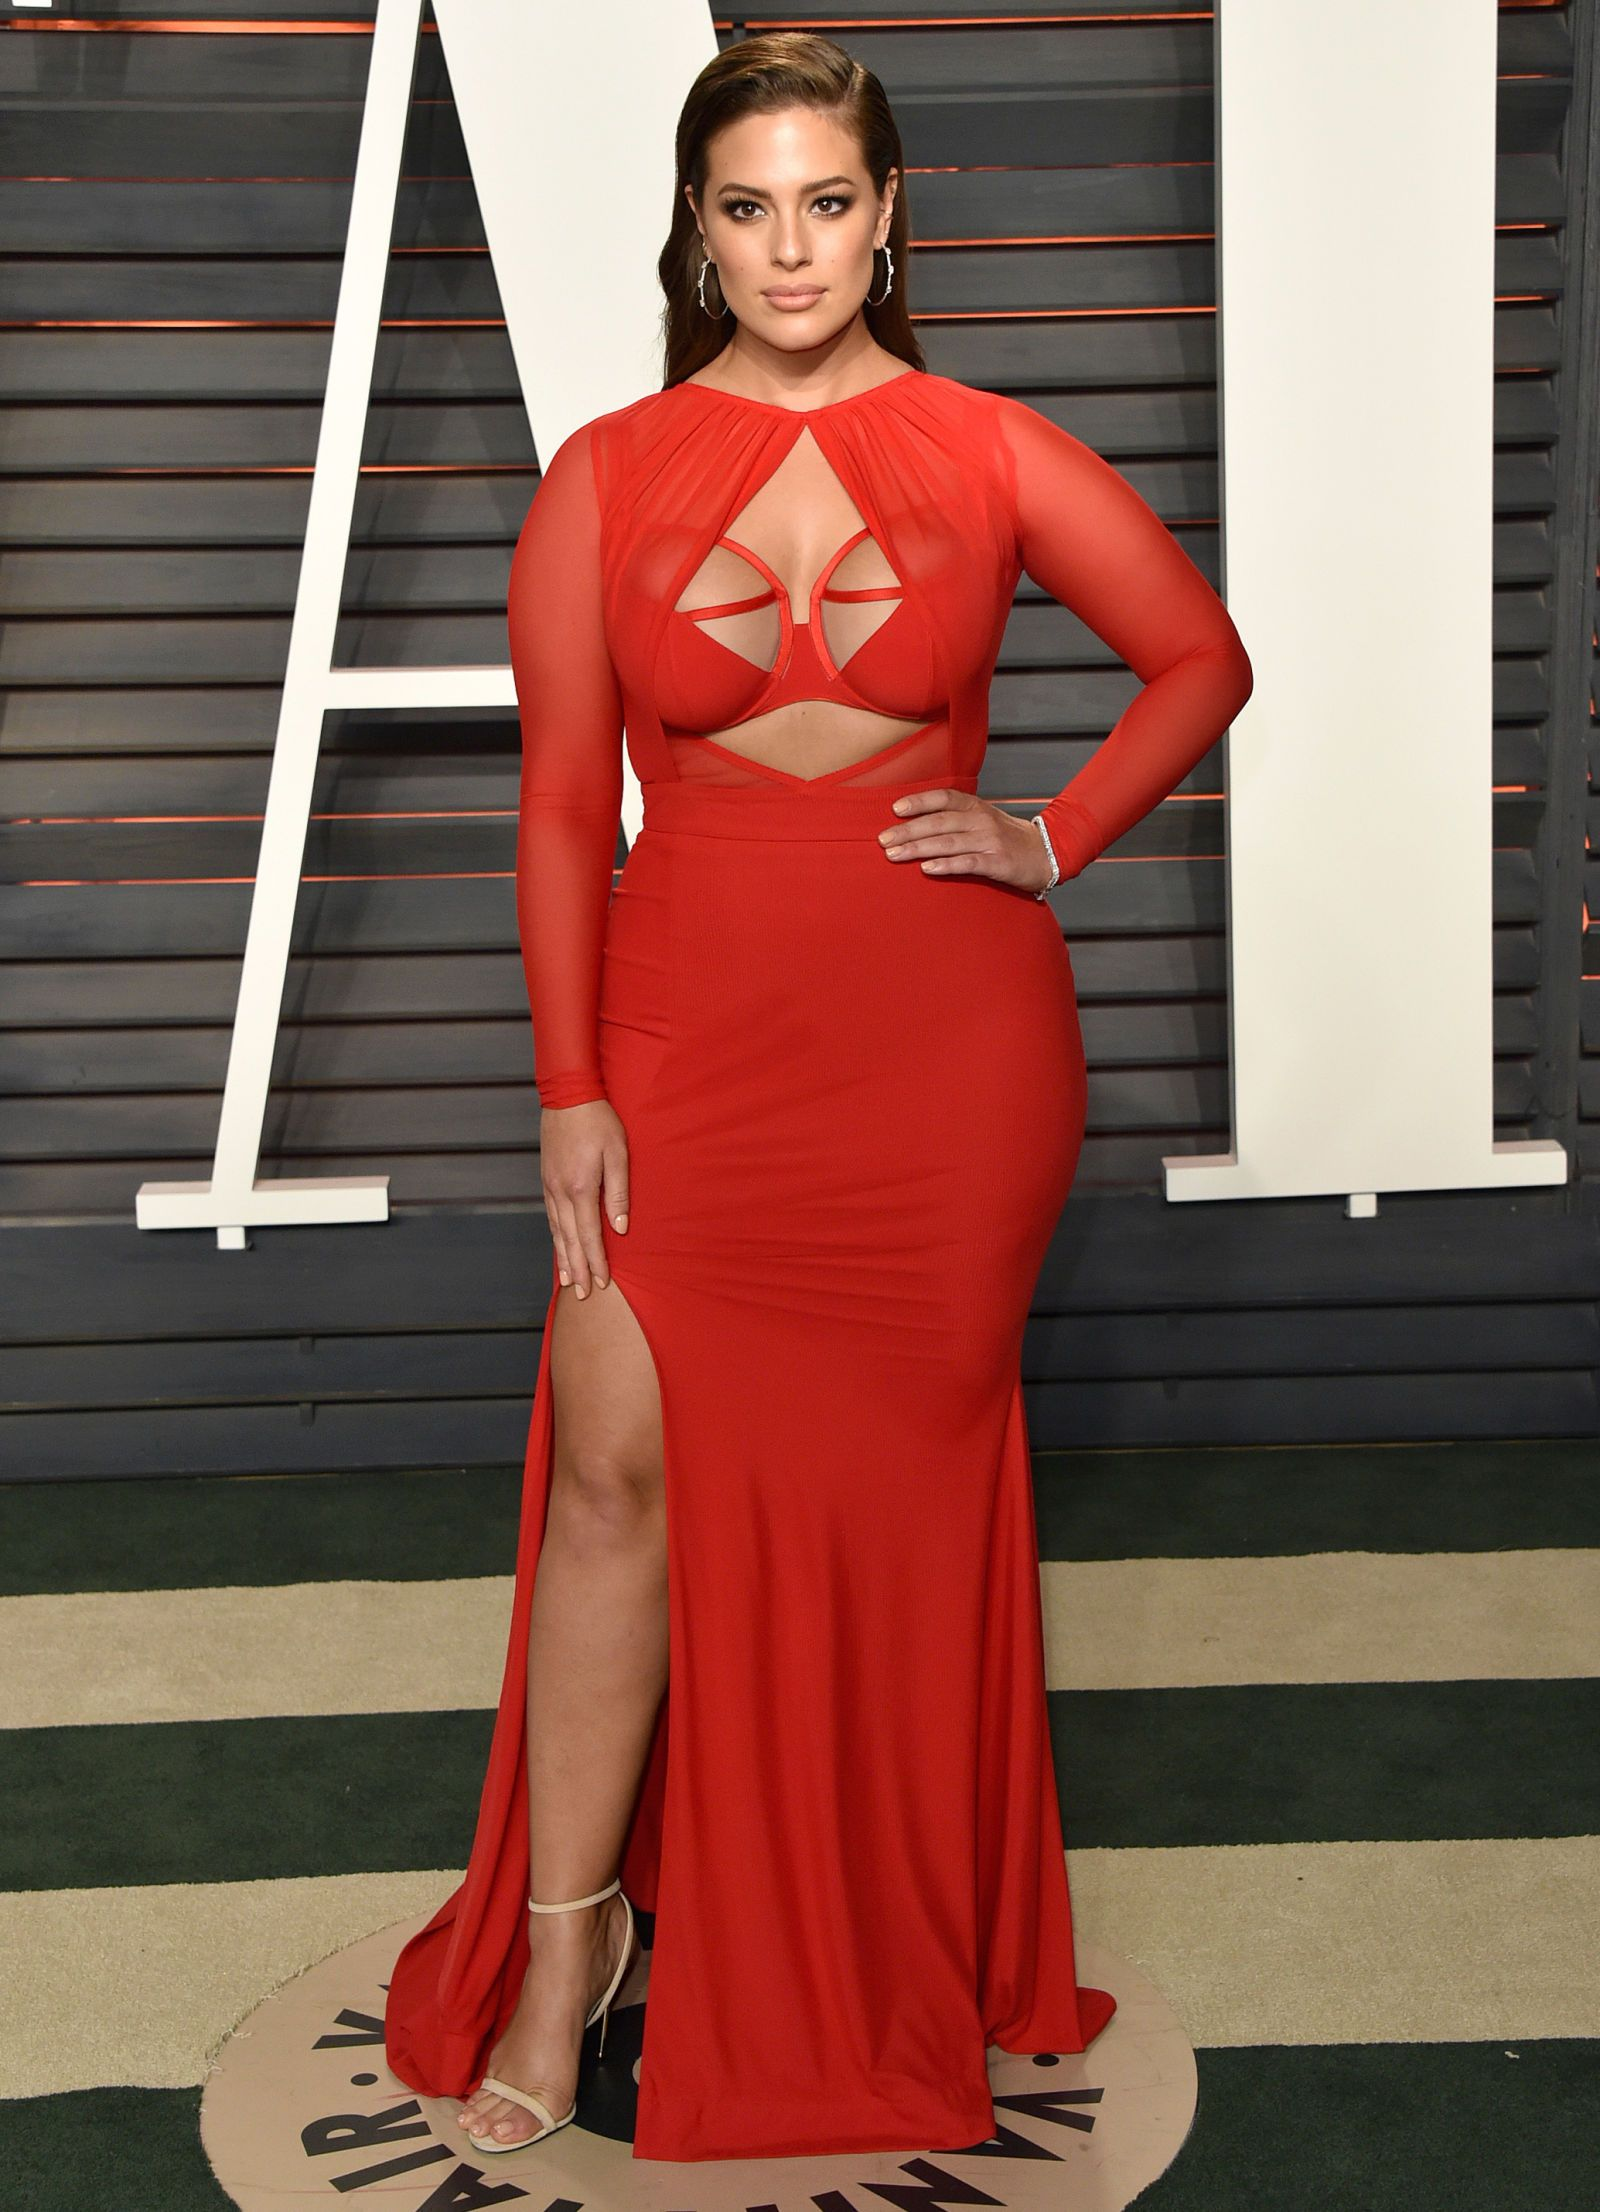 Ashley graham wedding dress   Celebrities Who Have Spoken Out About Designers Refusing to Dress